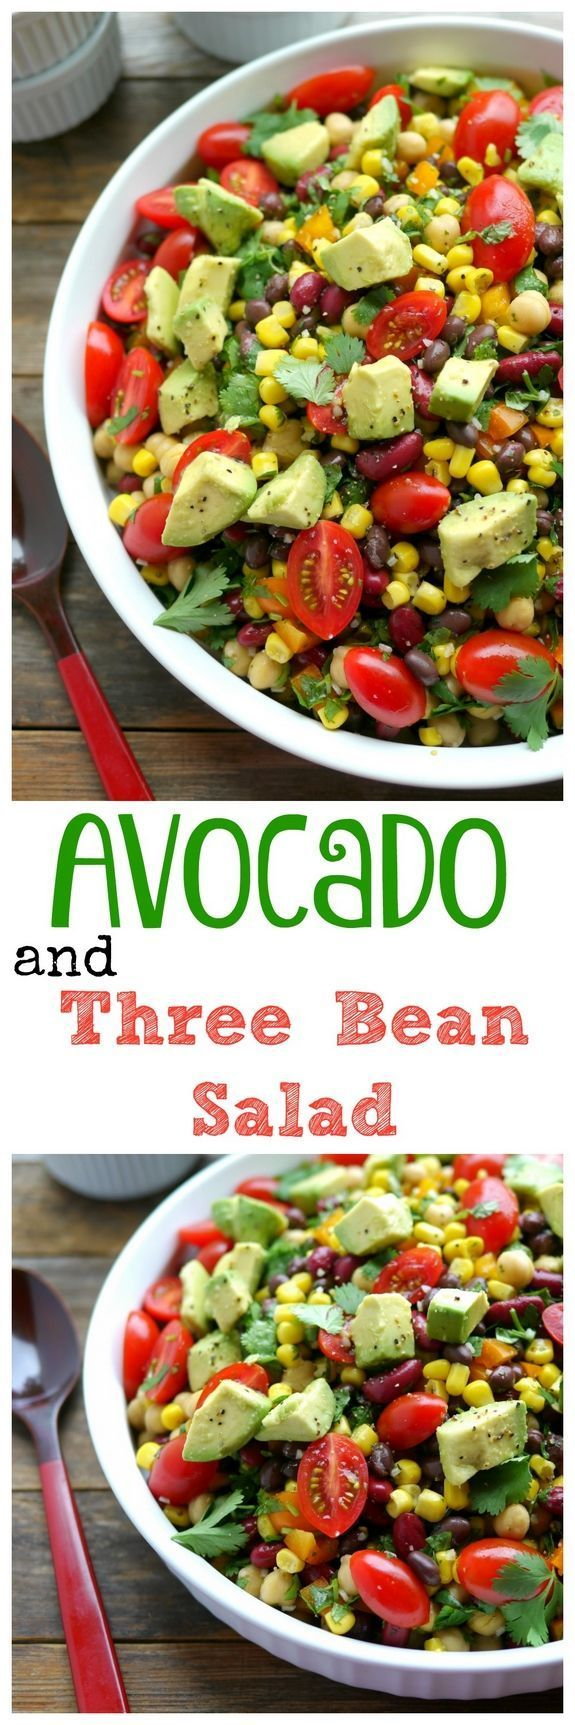 VIDEO + Recipe for Avocado and Three Bean Salad. It's the perfect side to so many meals. Light and refreshing you need to make this soon from http://NoblePig.com. One of the most popular recipes on my blog.